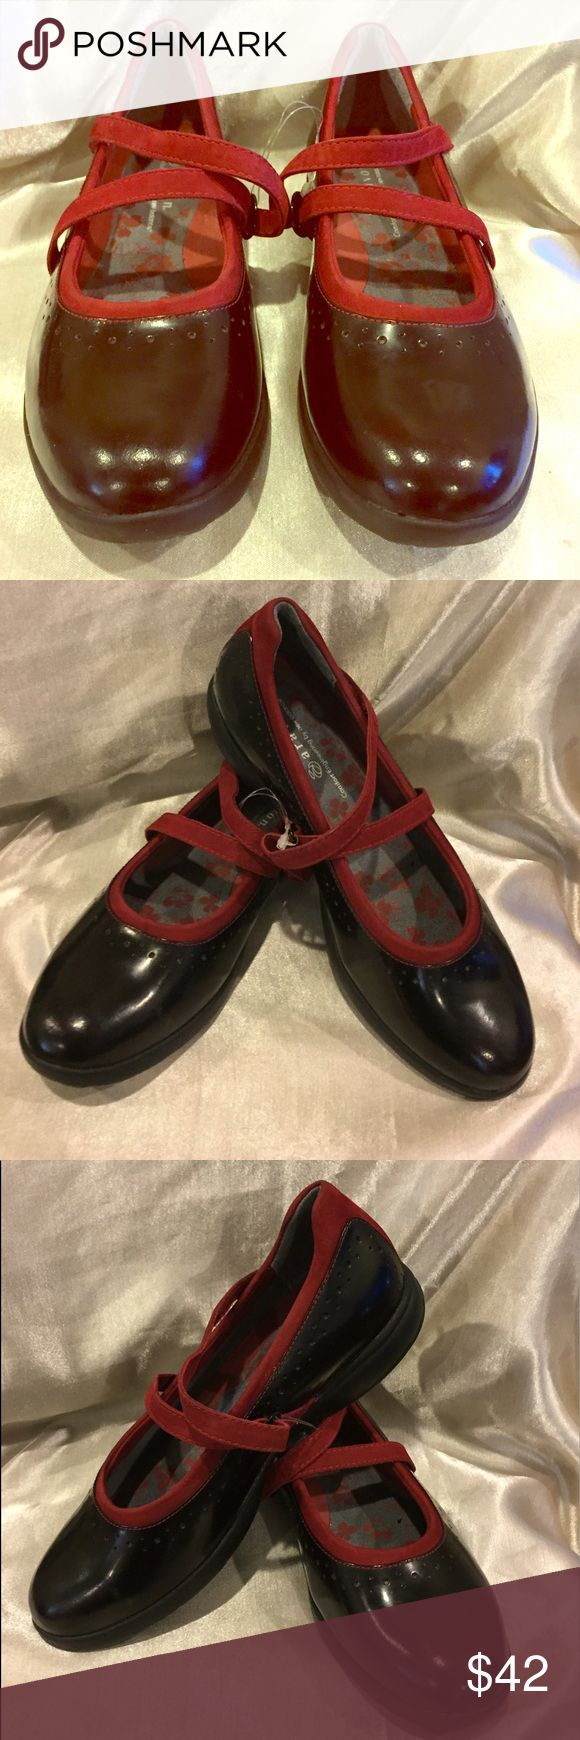 Aravon New Balance Mary Janes Black  Red size 7.5 Aravon by New Balance red and black Mary Jane vibram soles please see pic EUC New Balance Shoes Flats & Loafers